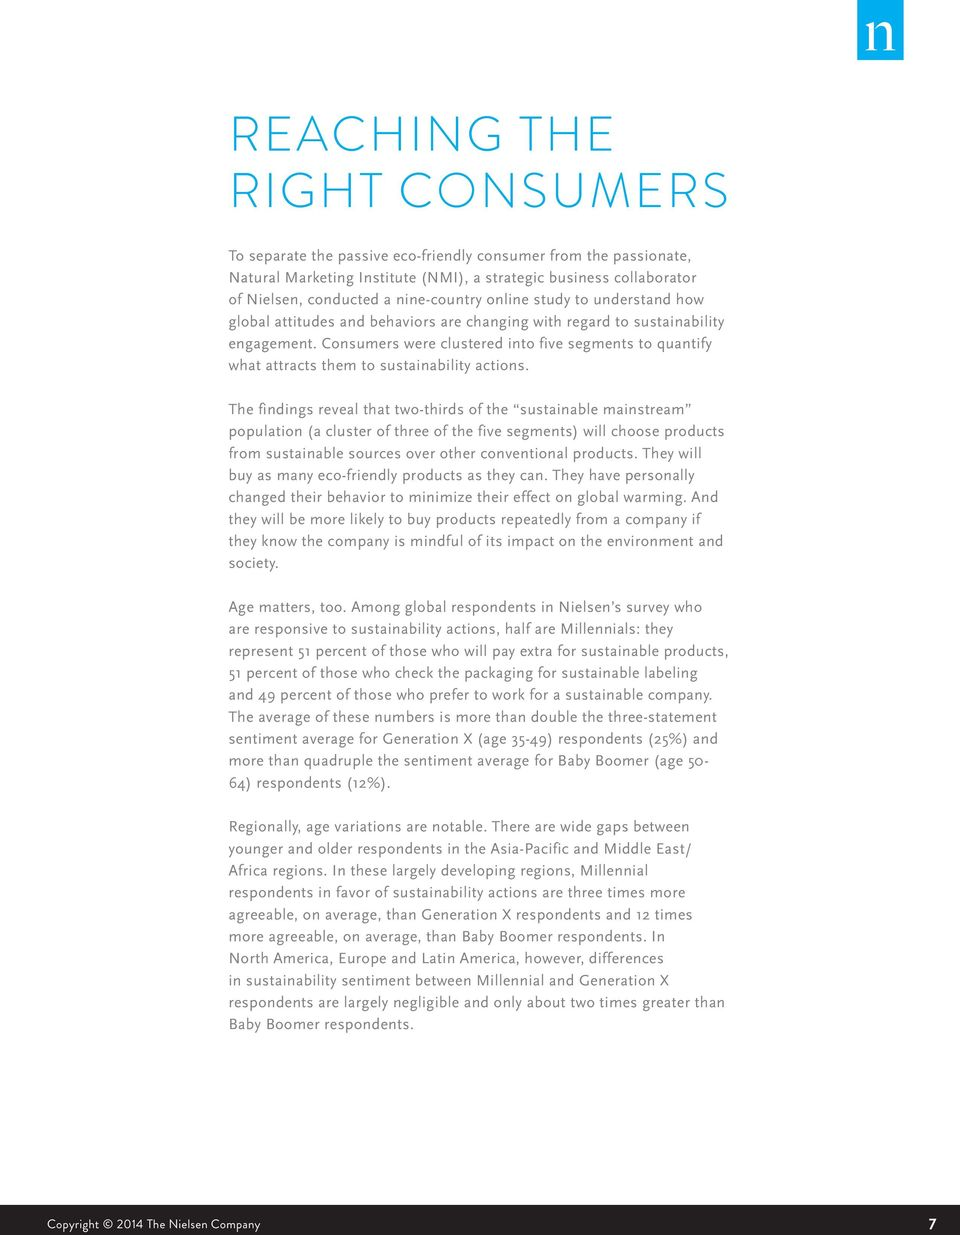 Consumers were clustered into five segments to quantify what attracts them to sustainability actions.